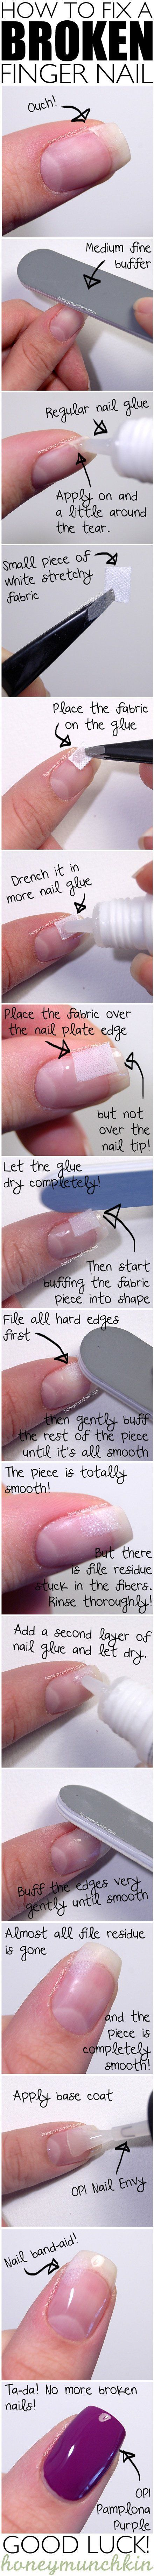 476 best Jam Nails! images on Pinterest | Jamberry party, Jamberry ...